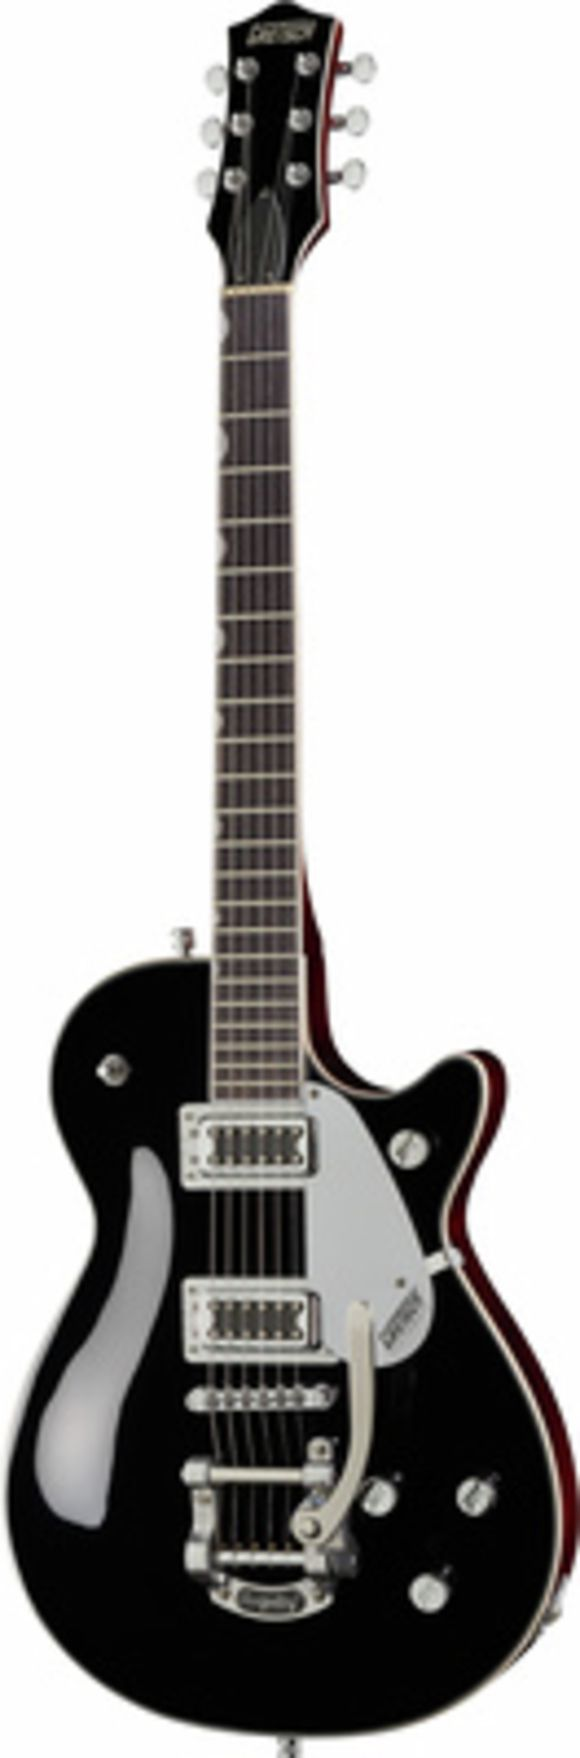 G5230T Electromatic Jet FT BLK Gretsch